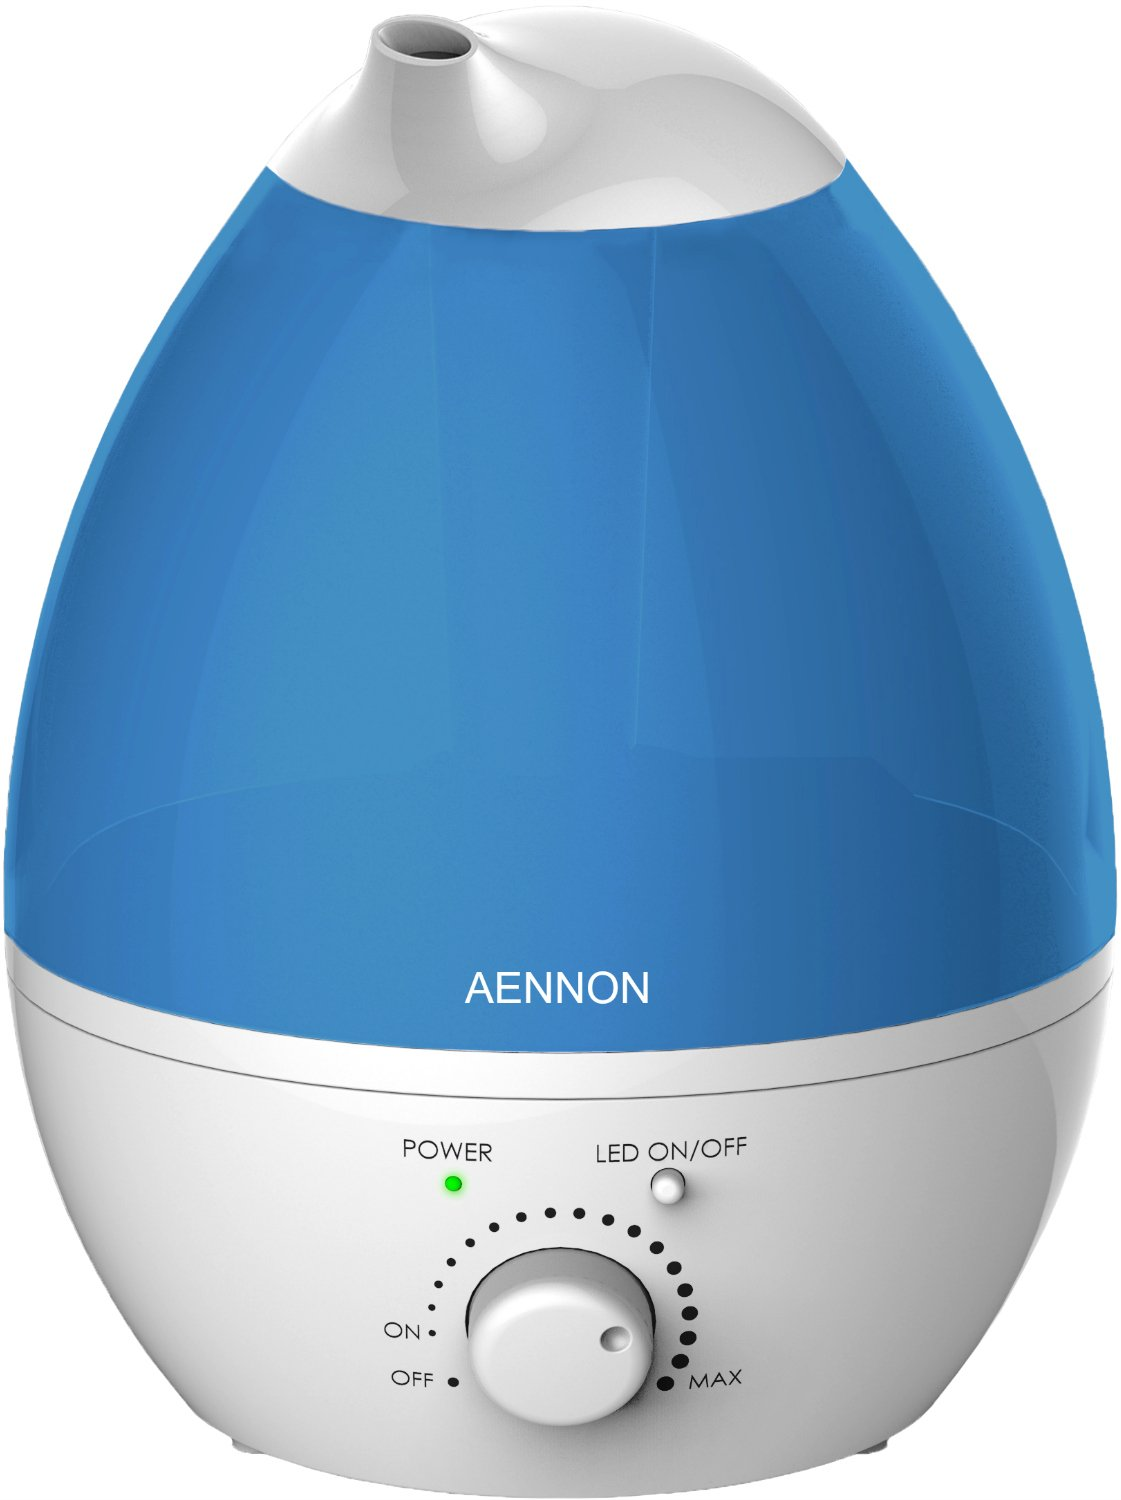 Best Humidifier For Bedroom: Cold Water Humidifier: Amazon.com